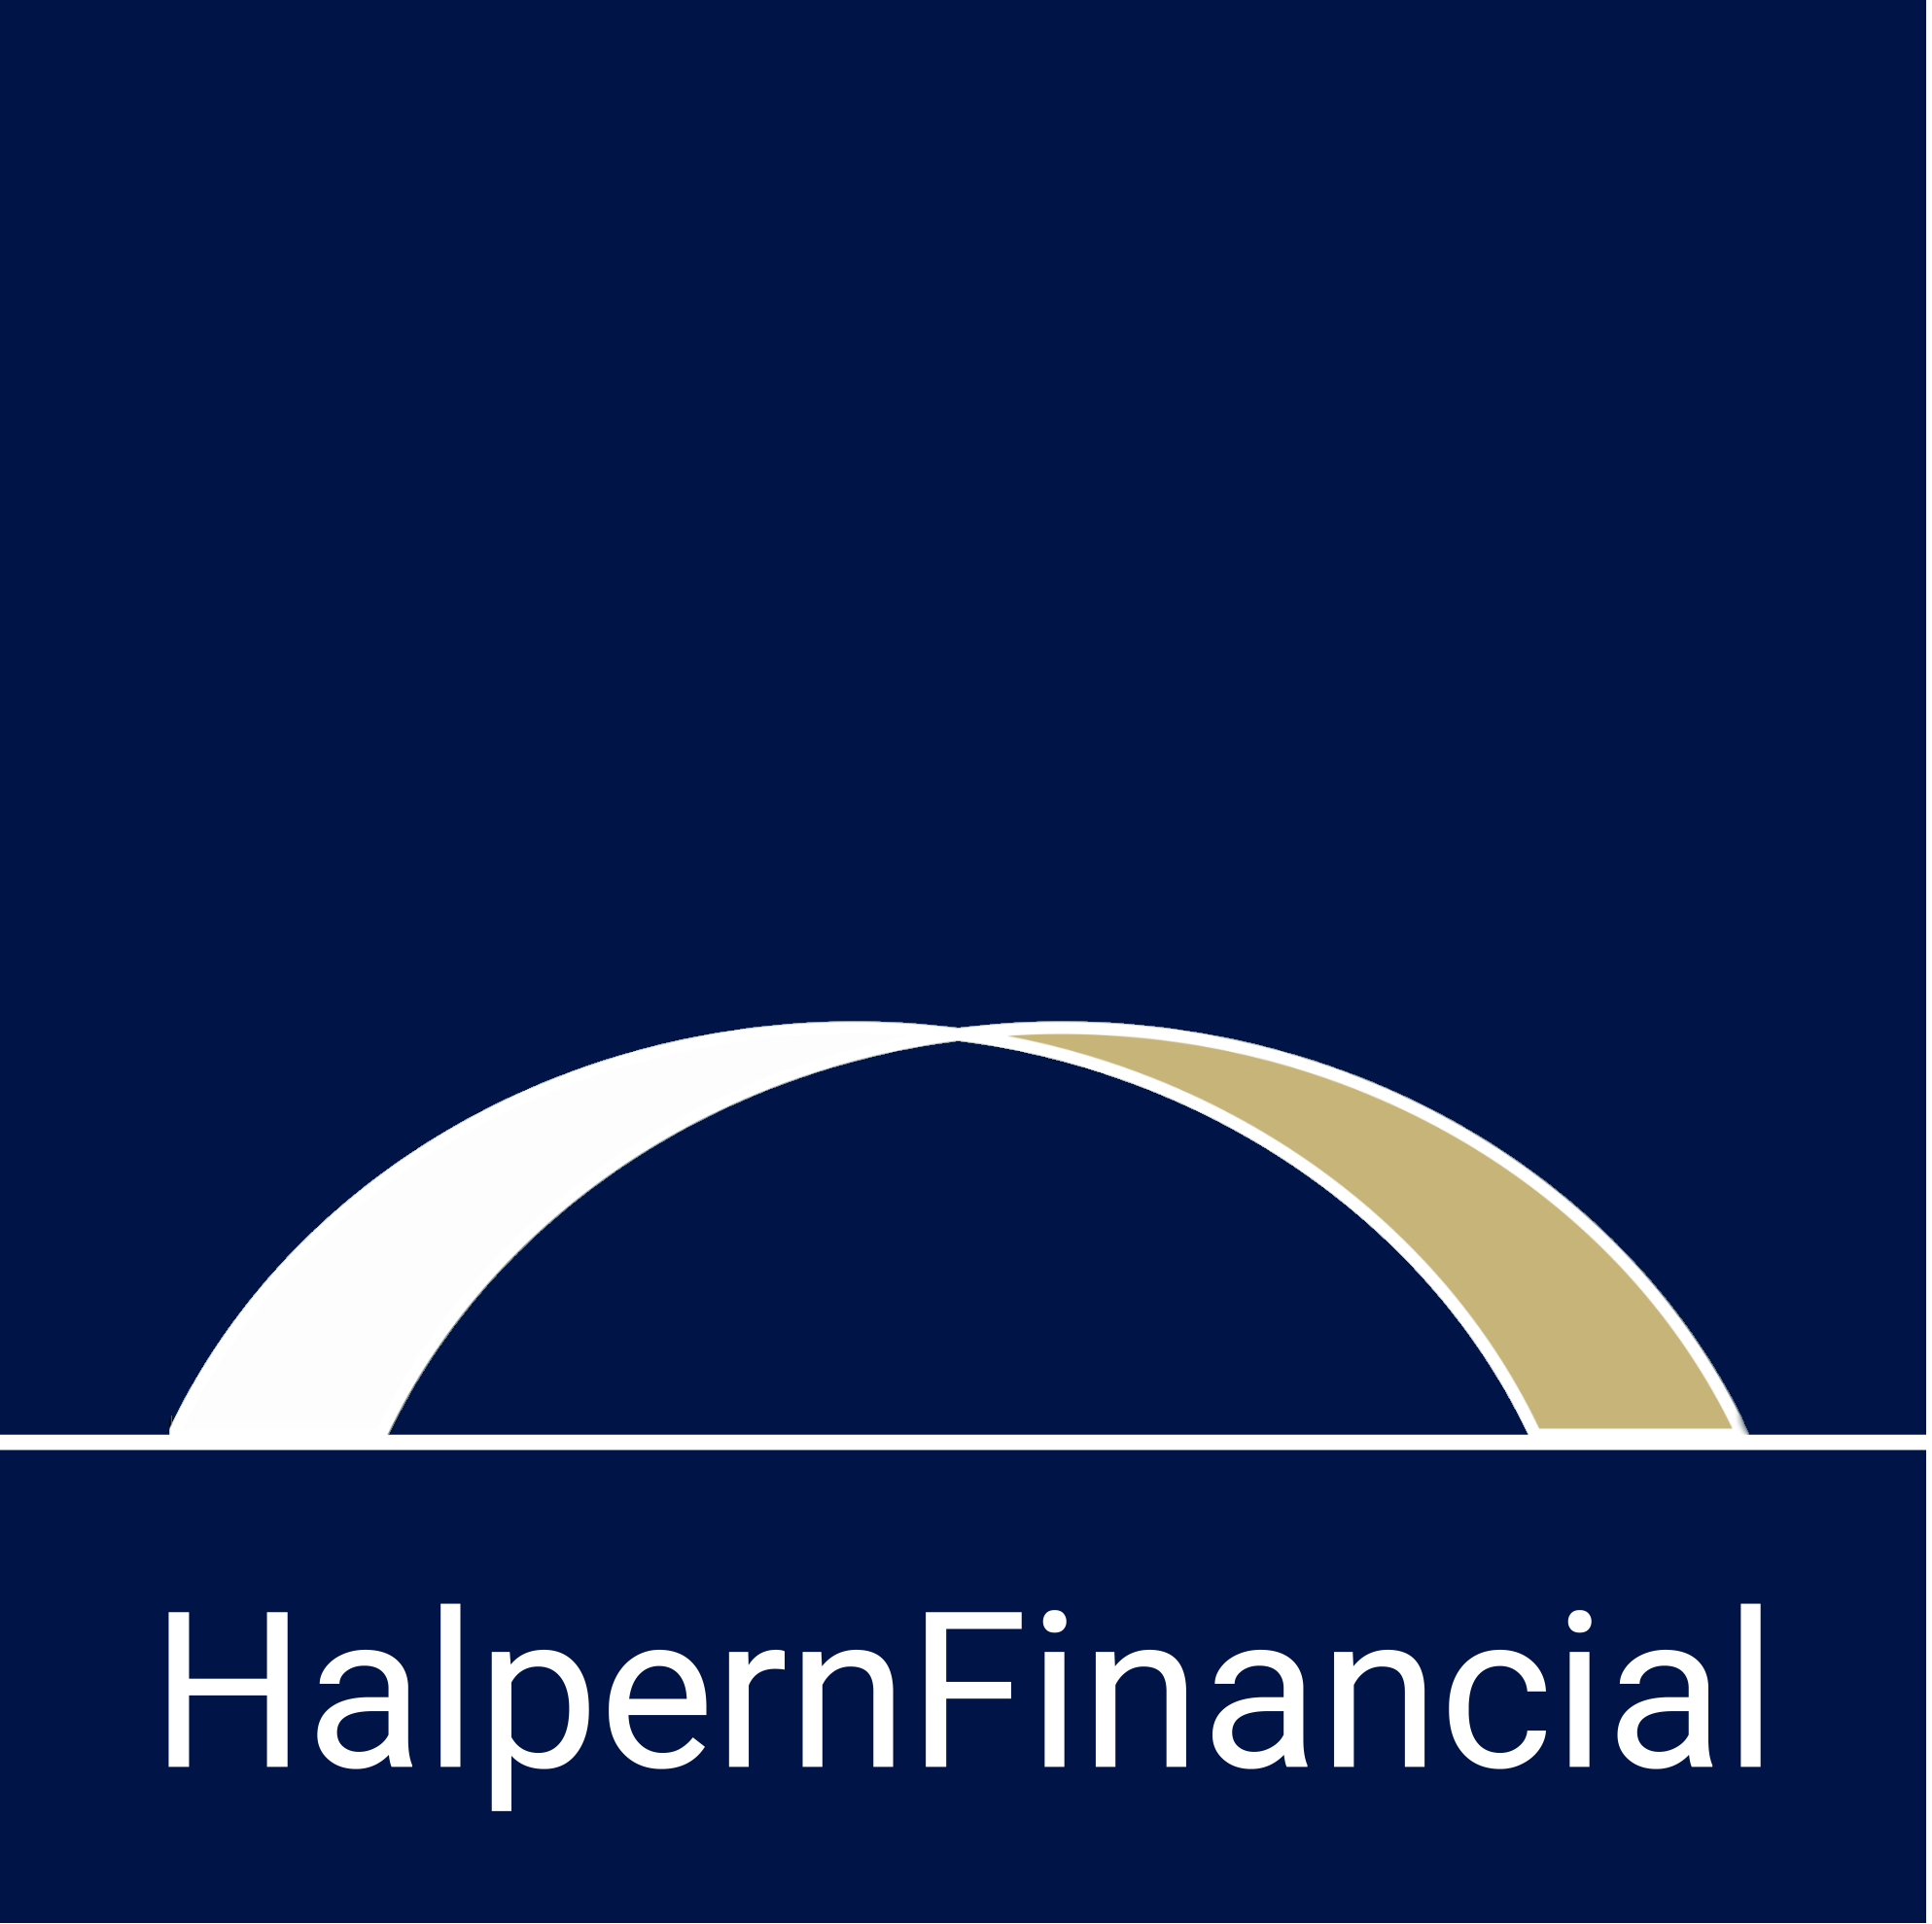 Halpern Financial